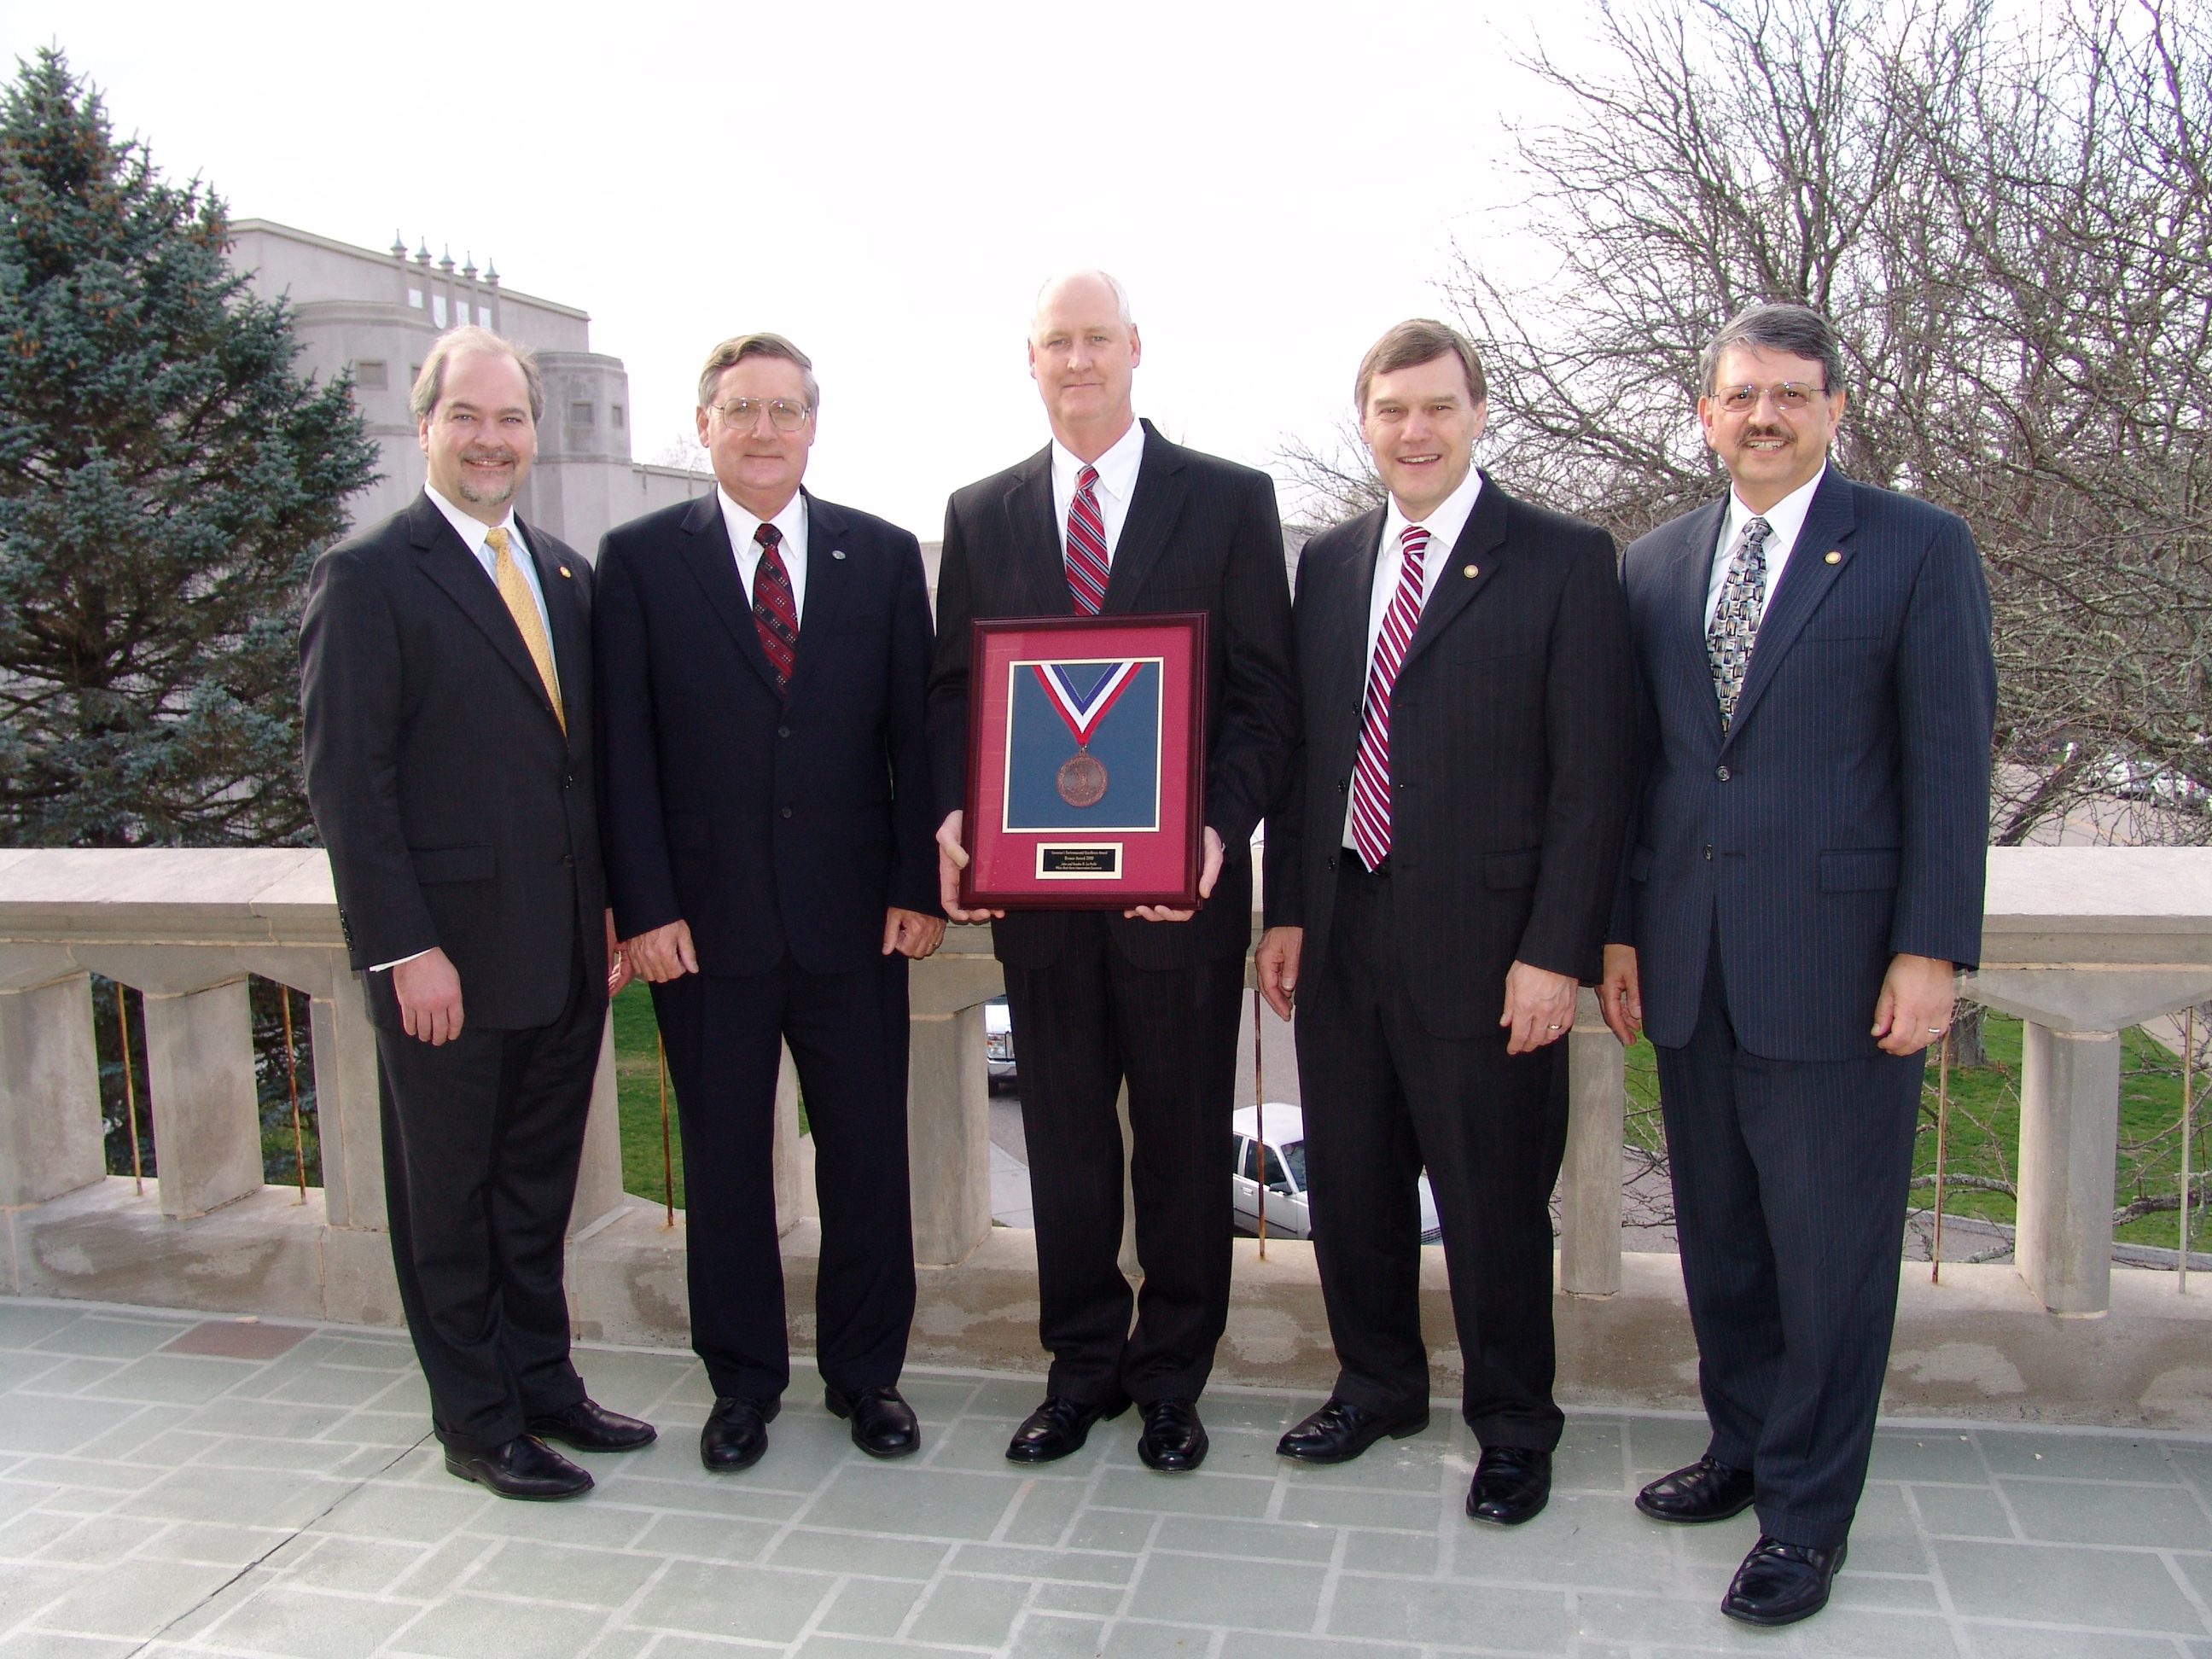 From left to right are Virginia's Secretary of Natural Resources L. Preston Bryant, Jr., Virginia Tech Sustainability Program Manger Denny Cochrane, Virginia Tech's Associate Vice President for Facilities Services Mike Coleman, Virginia's Director of Environmental Quality David Paylor, and Virginia's Director of Conservation and Recreation Joe Maroon.